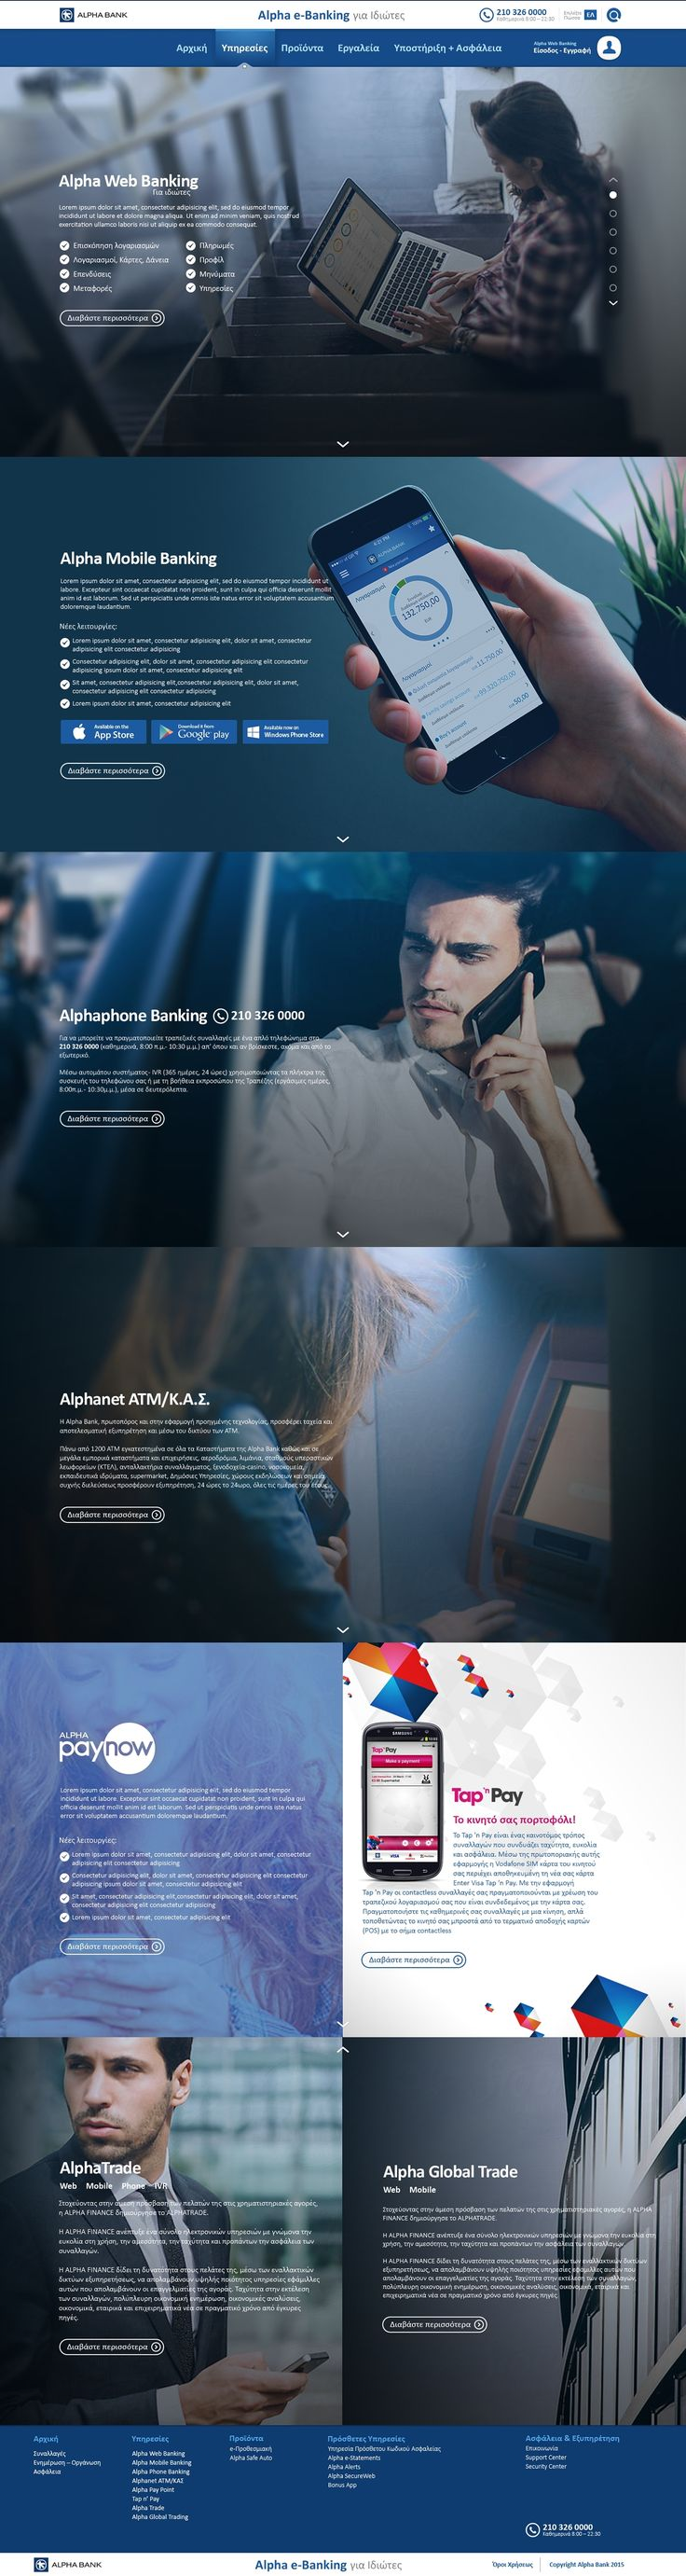 Alpha Bank : Alpha e-Banking prelogin website designs on Behance